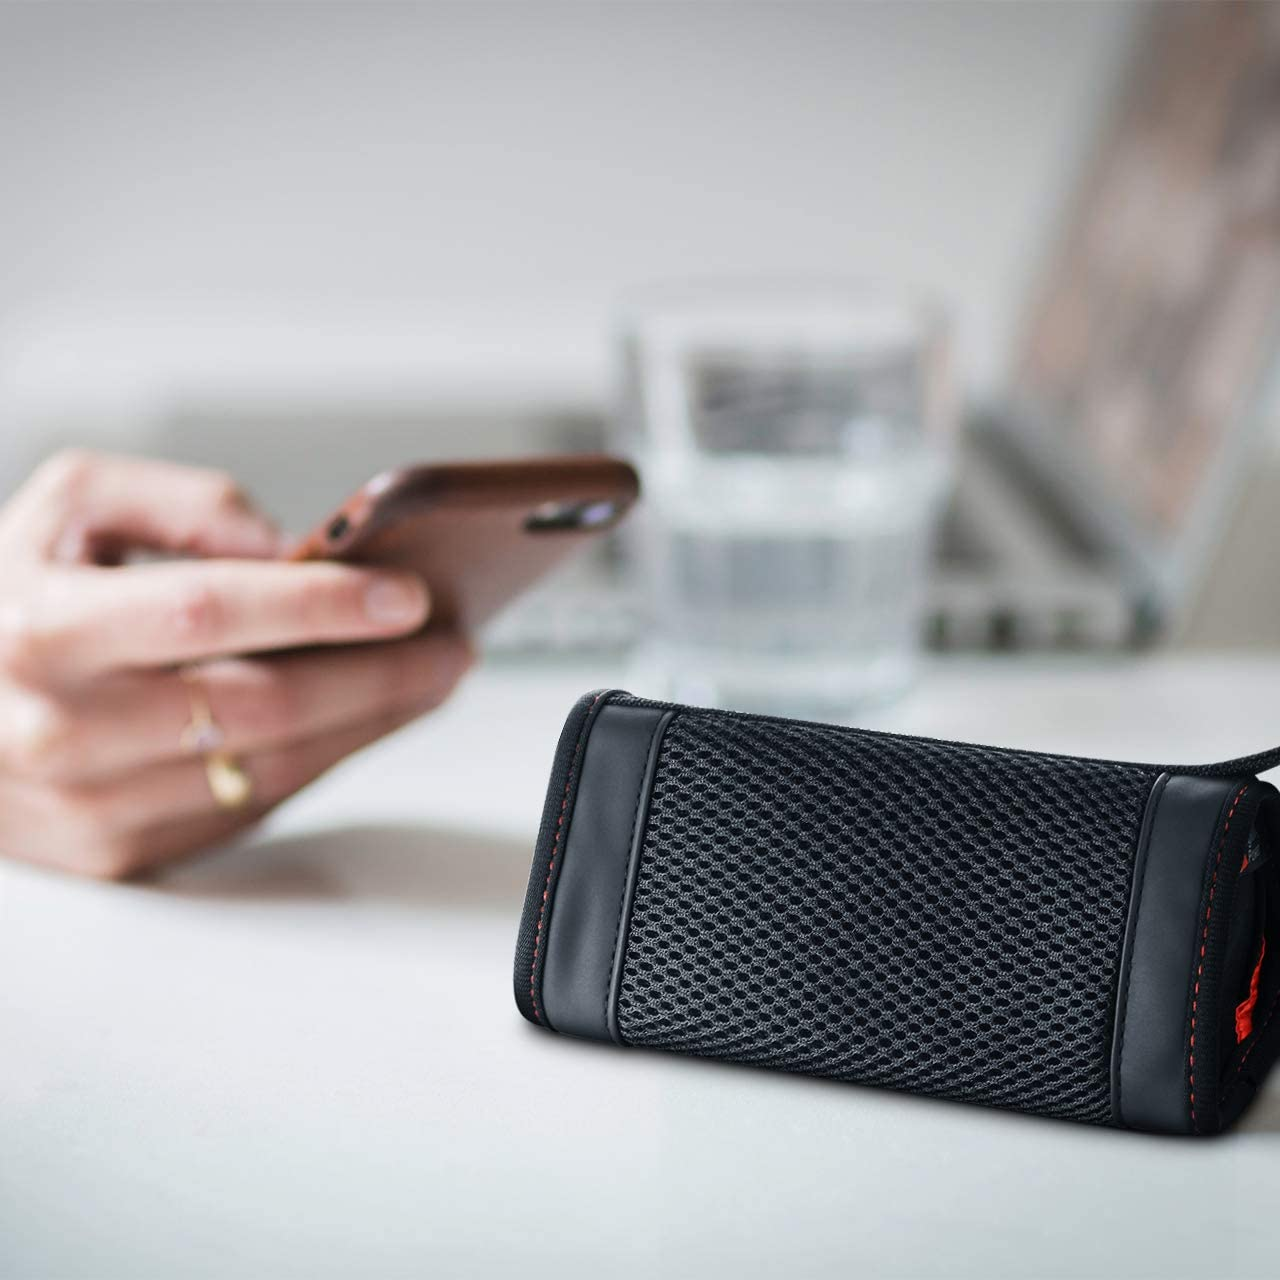 TXEsign Neoprene Mesh Carrying Soft Case Cover Compatible with OontZ Angle 3 3rd Gen // Angle 3 Ultra//OontZ Angle 3 Plus Portable Wireless Bluetooth Speaker